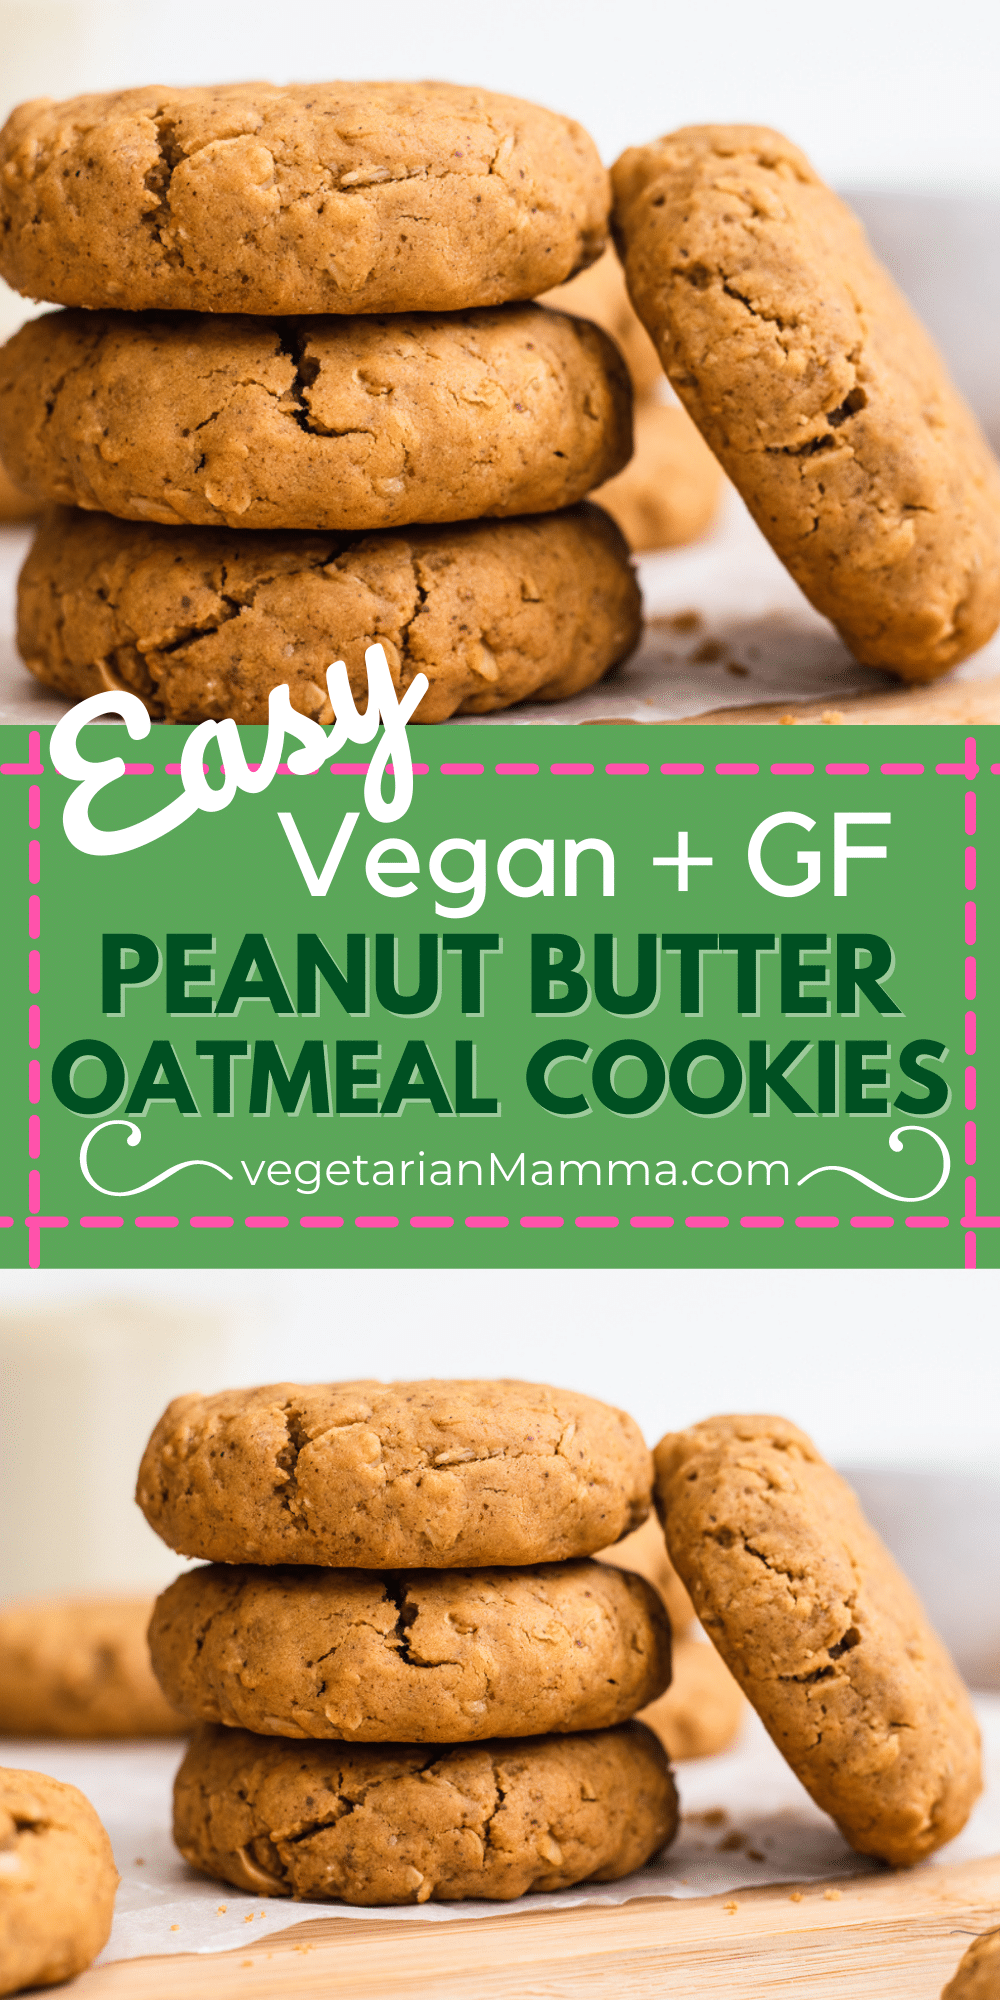 These Vegan Peanut Butter Oatmeal Cookies are so moist and gluten free, too! Made with rolled oats, natural peanut butter, and gluten-free flour, these are the easiest cookies to make without a mixer.